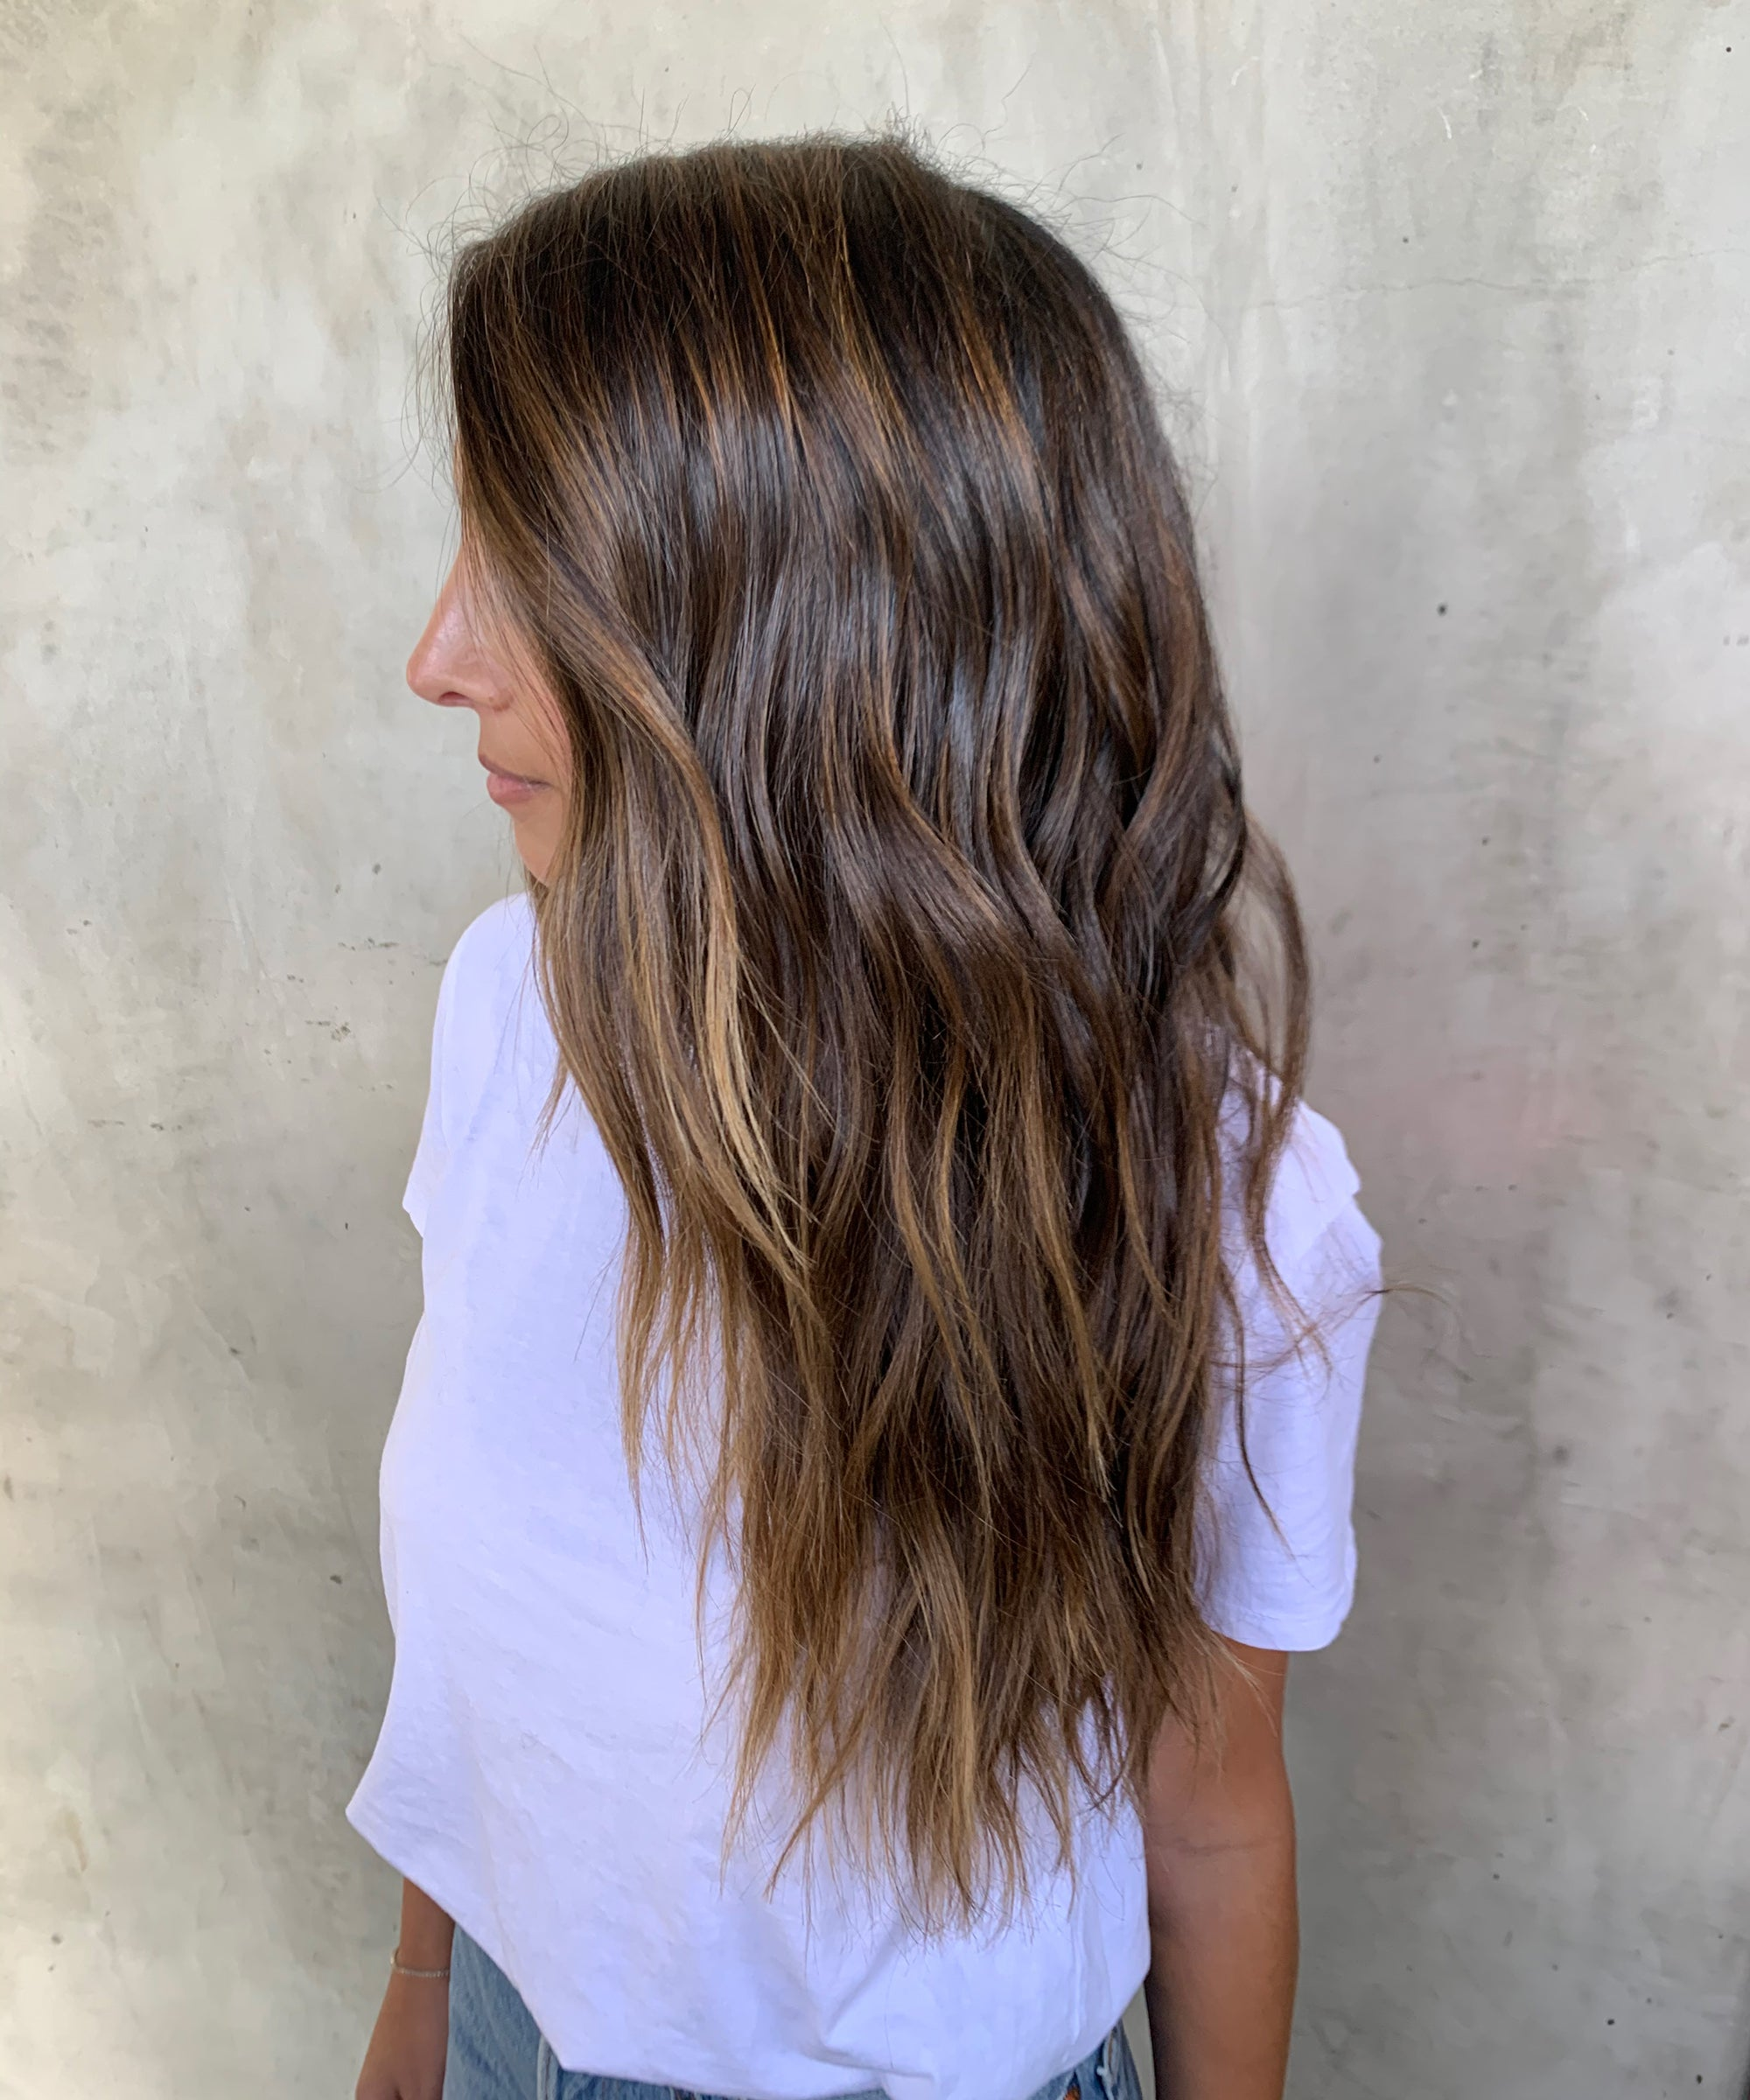 Honey Brown Hair Color Ideas On Trend For Winter 2020